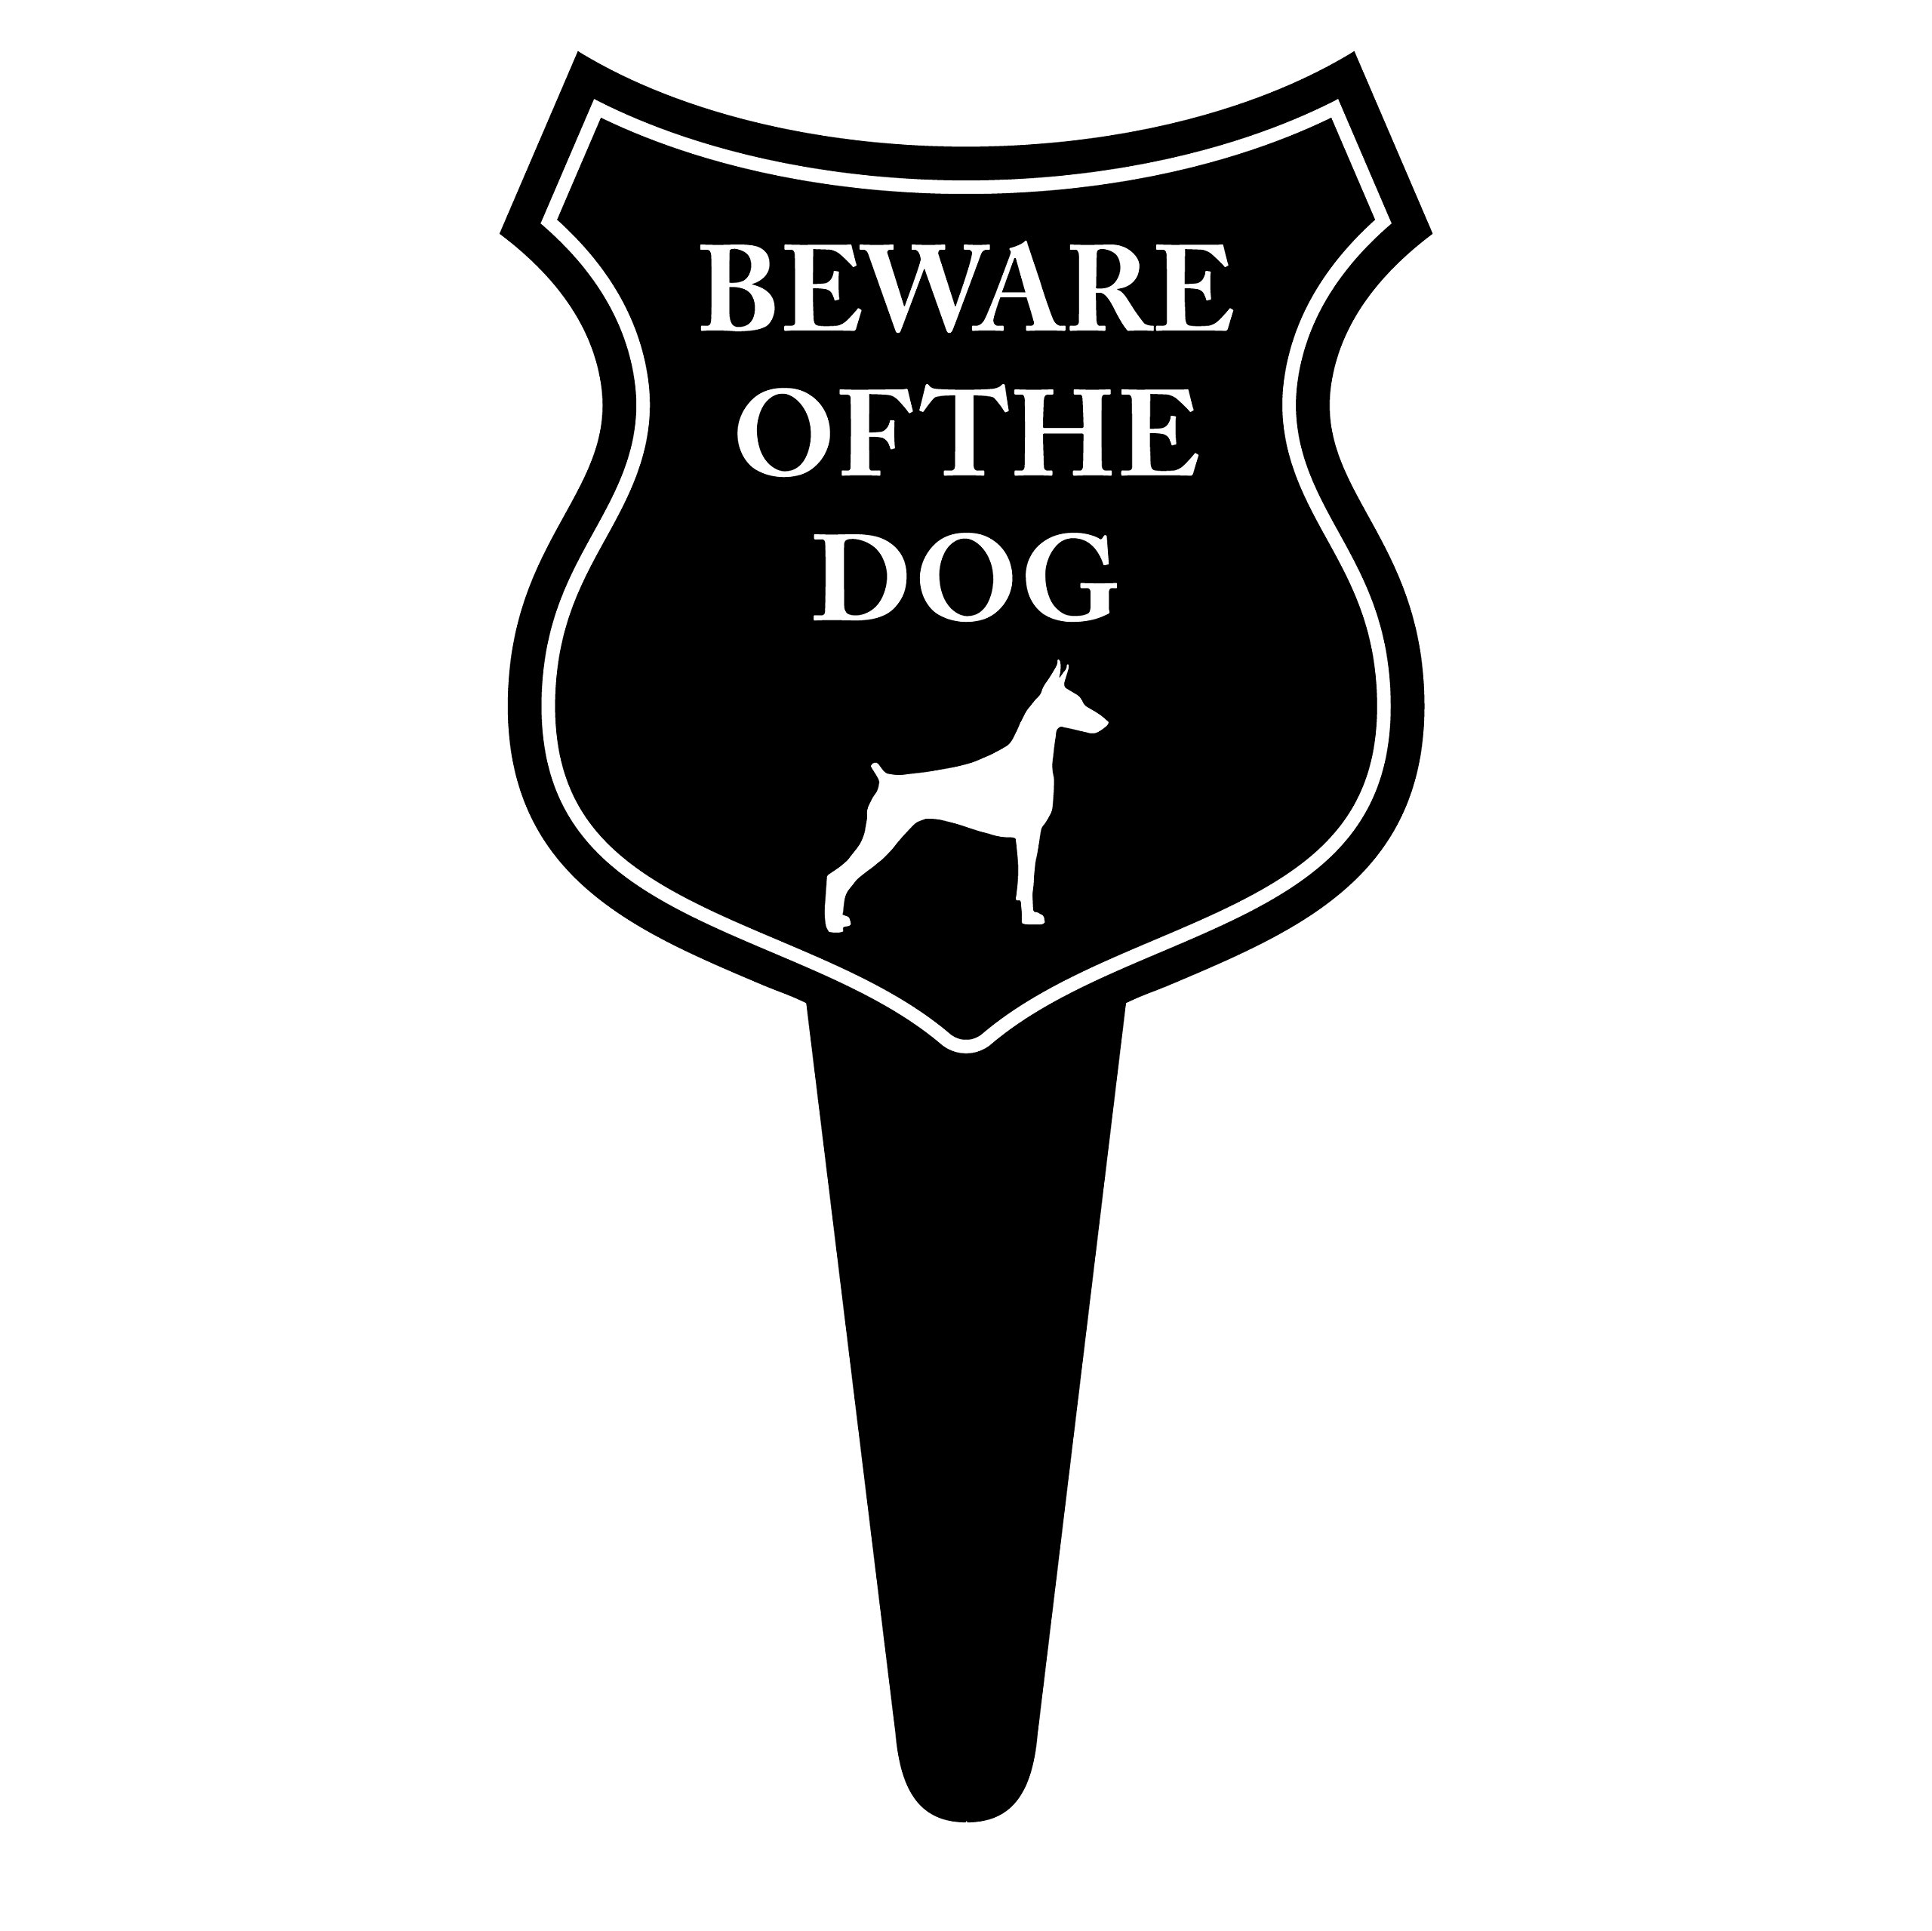 iCandy Products Inc Beware Of Dog Lawn Stake Sign No Poop Peeing Home Flower Bed Signs 9.5x18 Inches - Aluminum